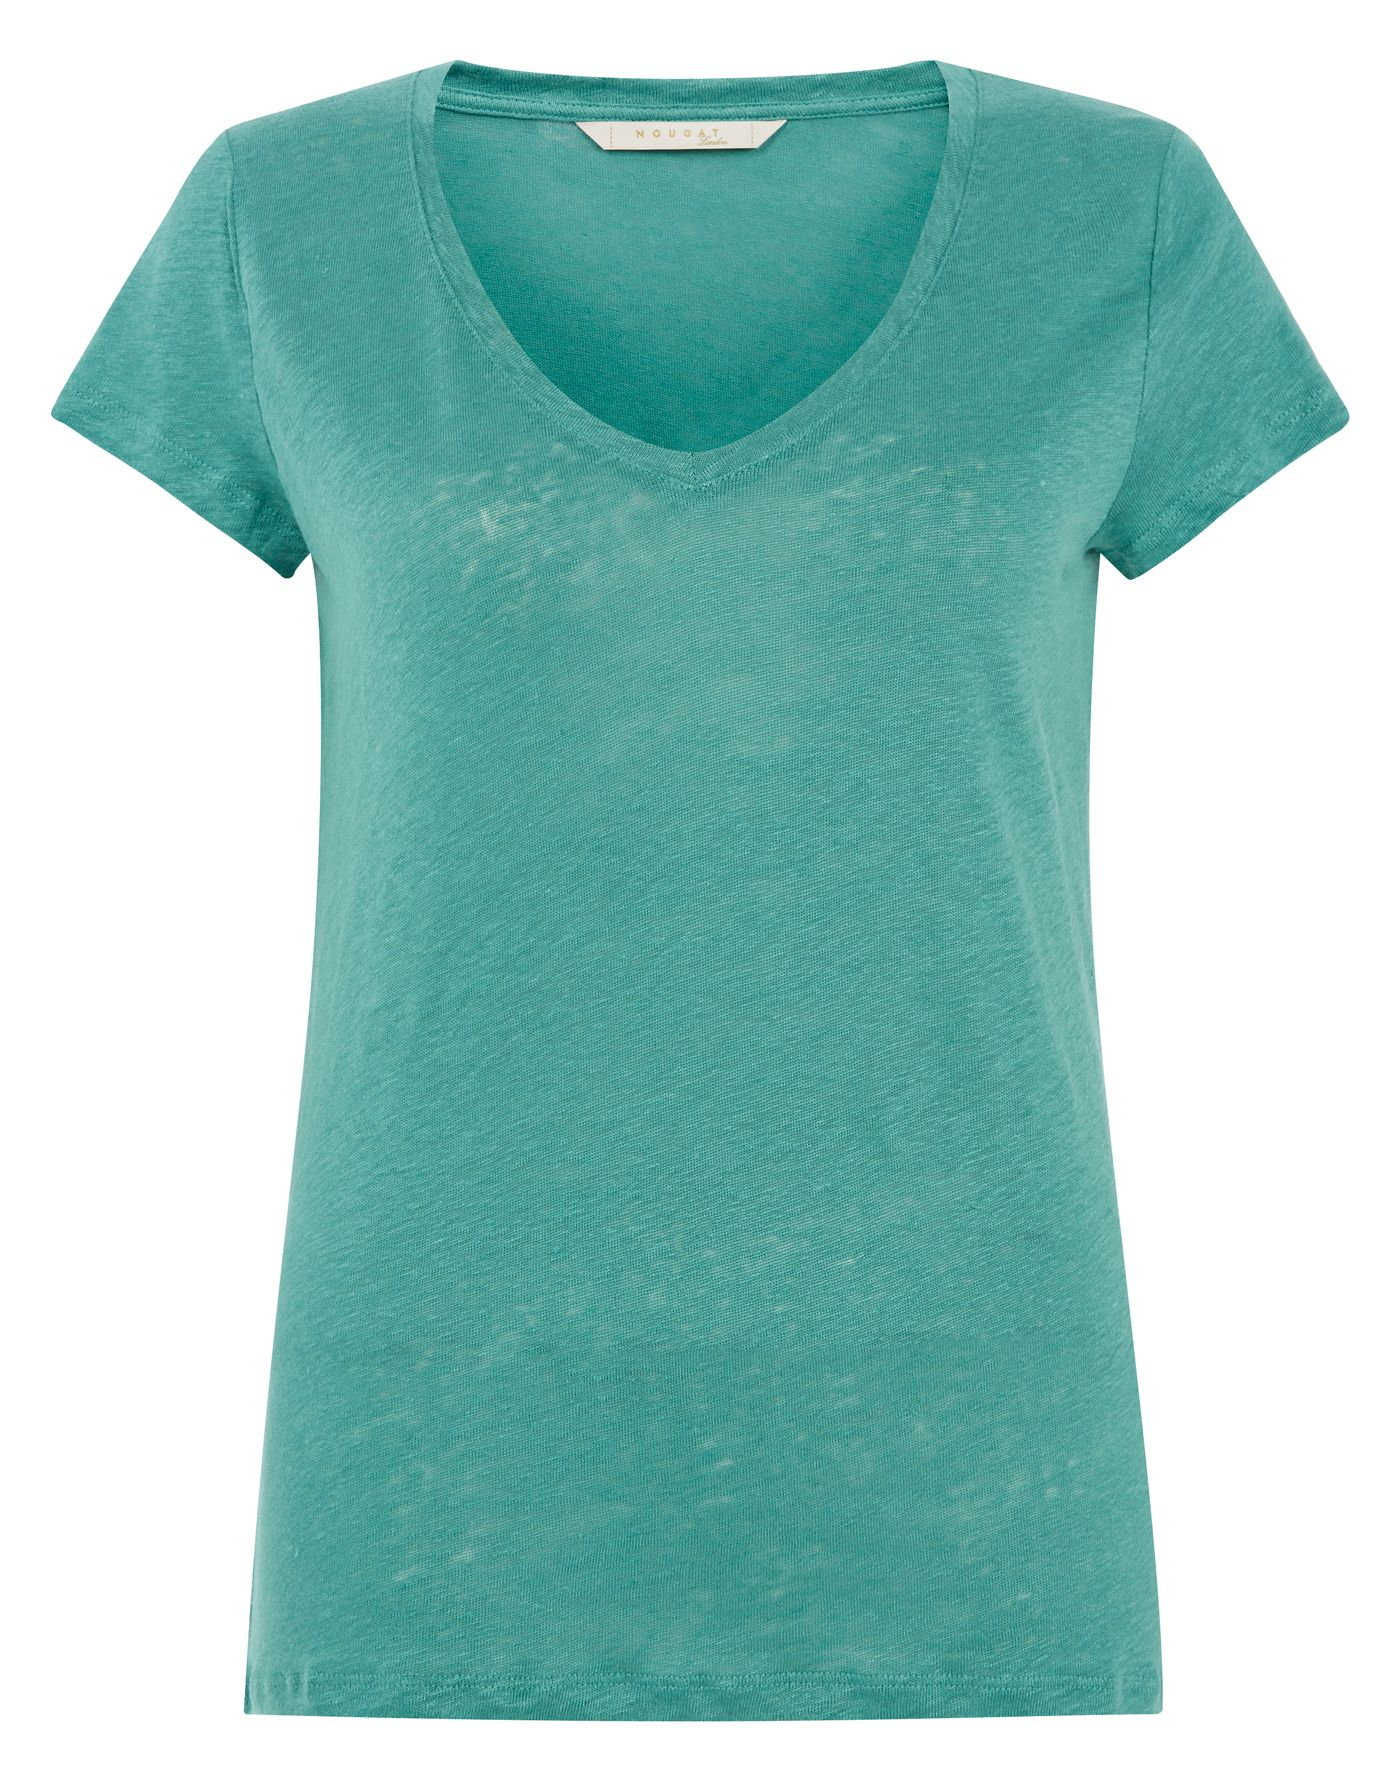 Basic v neck tshirt